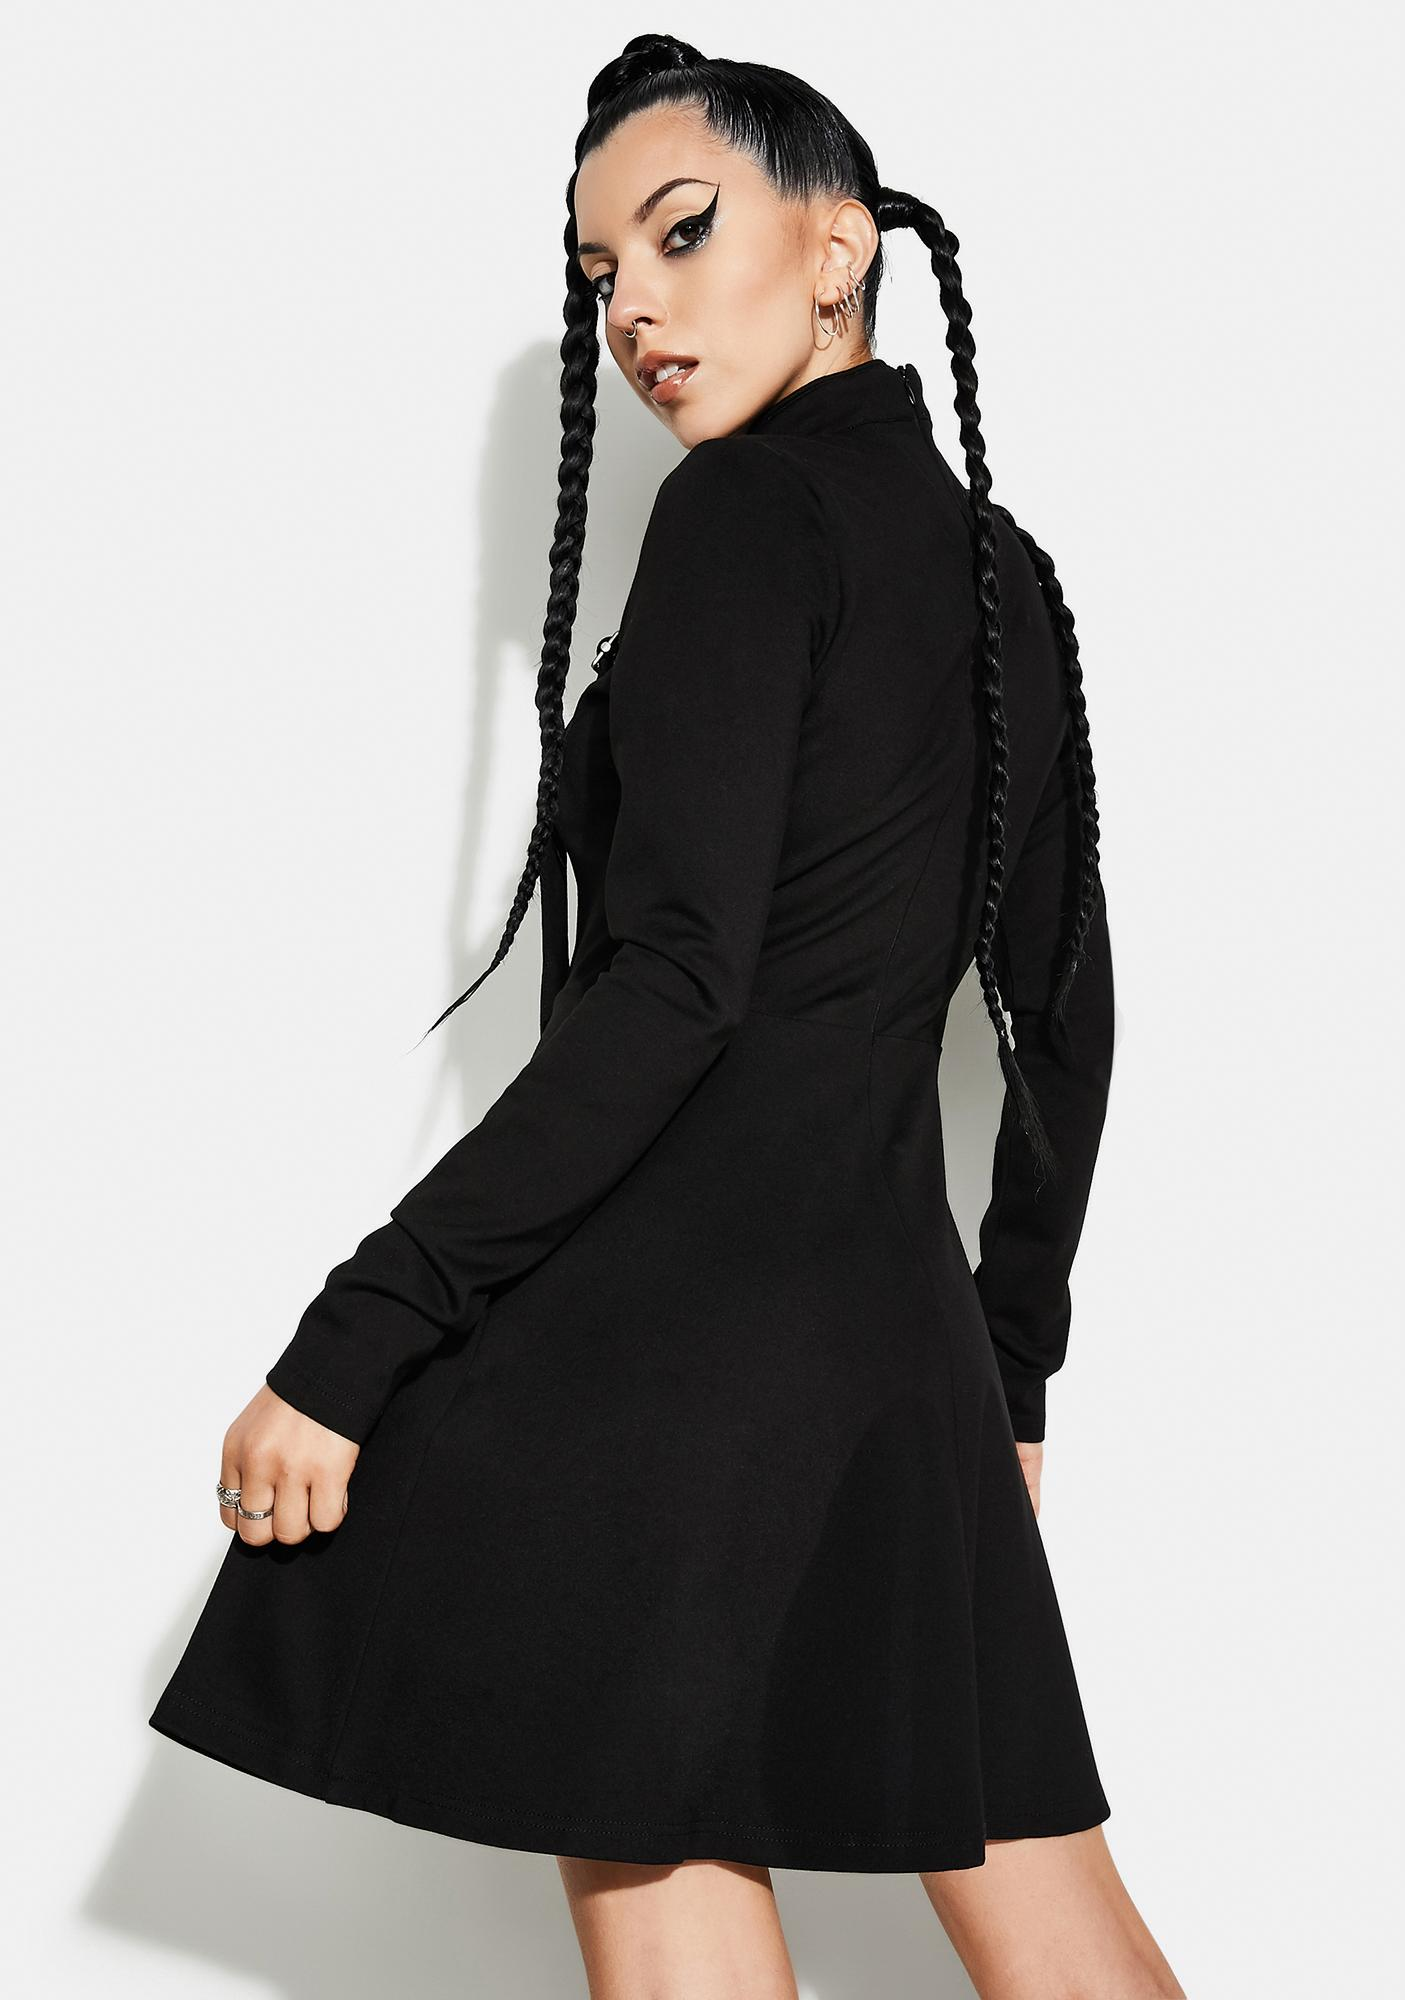 Punk Rave Gothic Stand Collar Strappy Dress